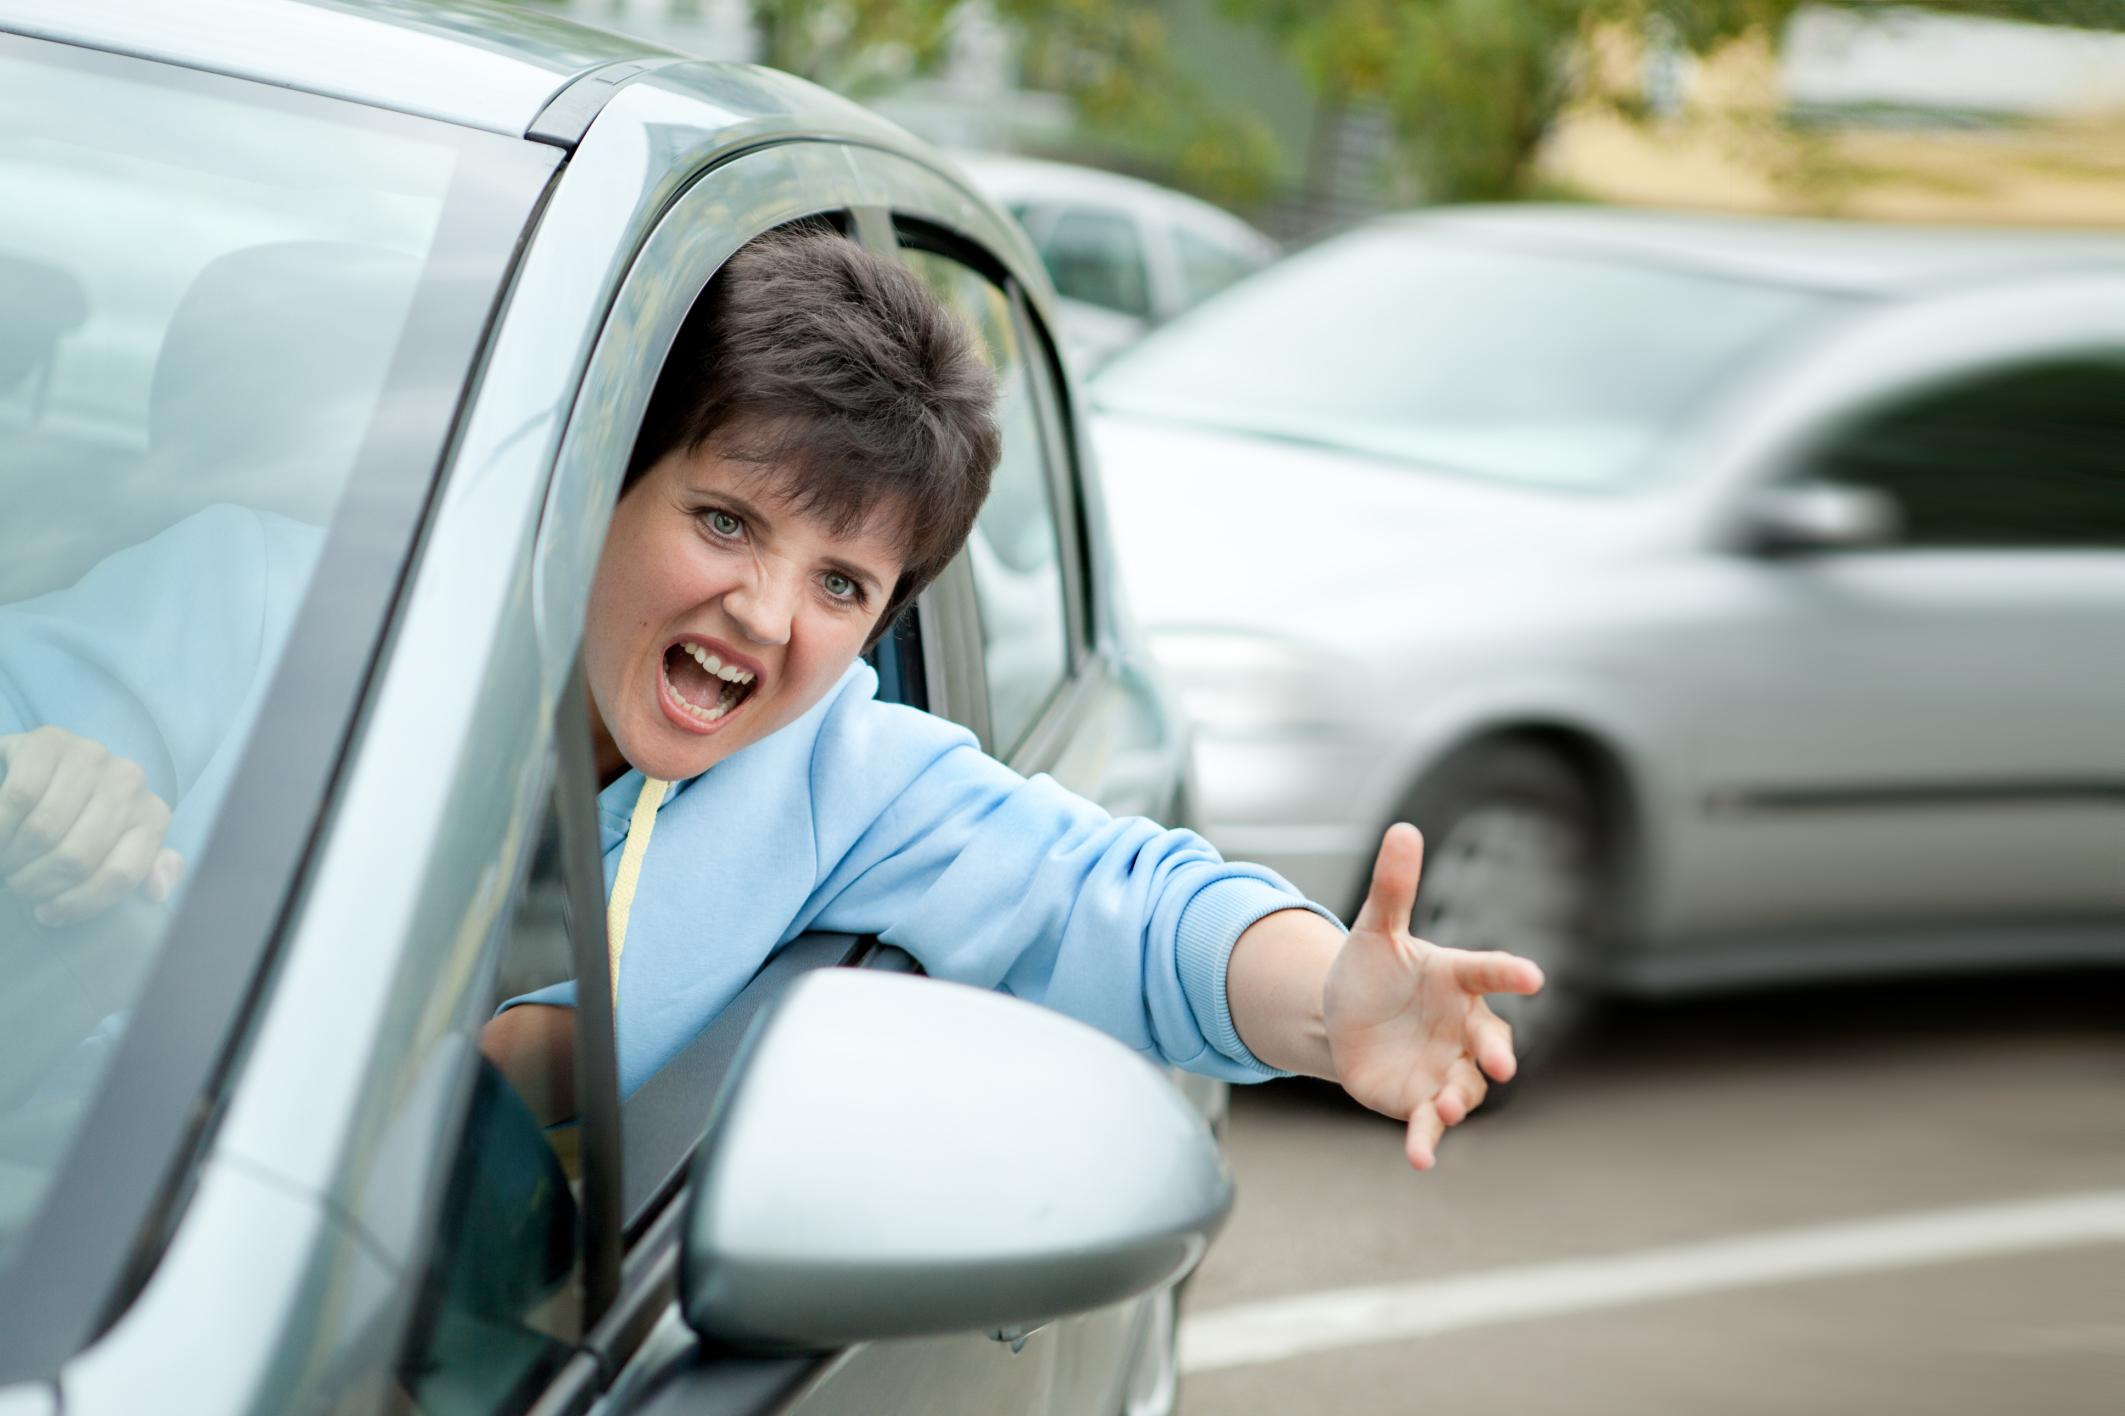 The worst times of the week for road rage